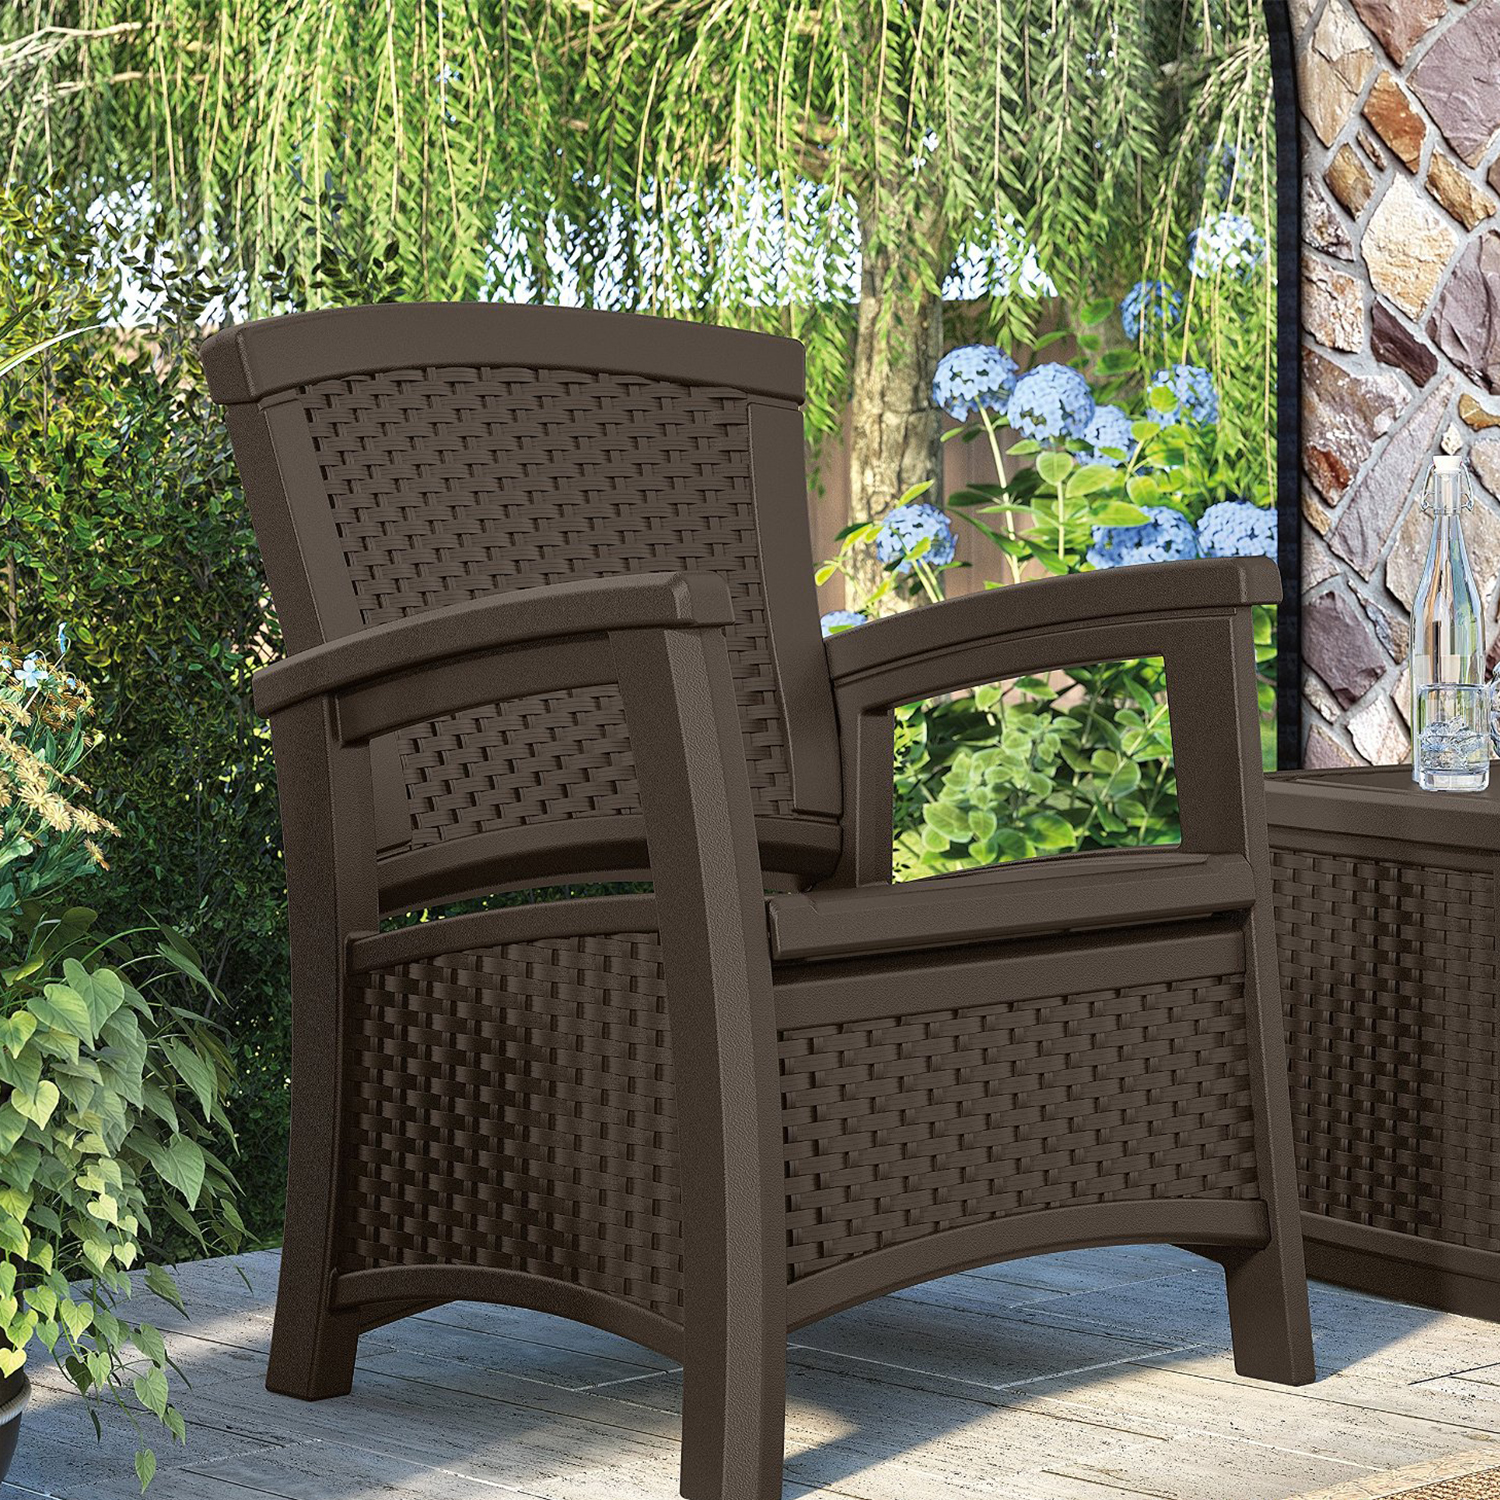 Outdoor Patio Furniture With Storage.Details About Suncast Elements Wicker Design Loveseat Resin Club Chairs Coffee Table Java